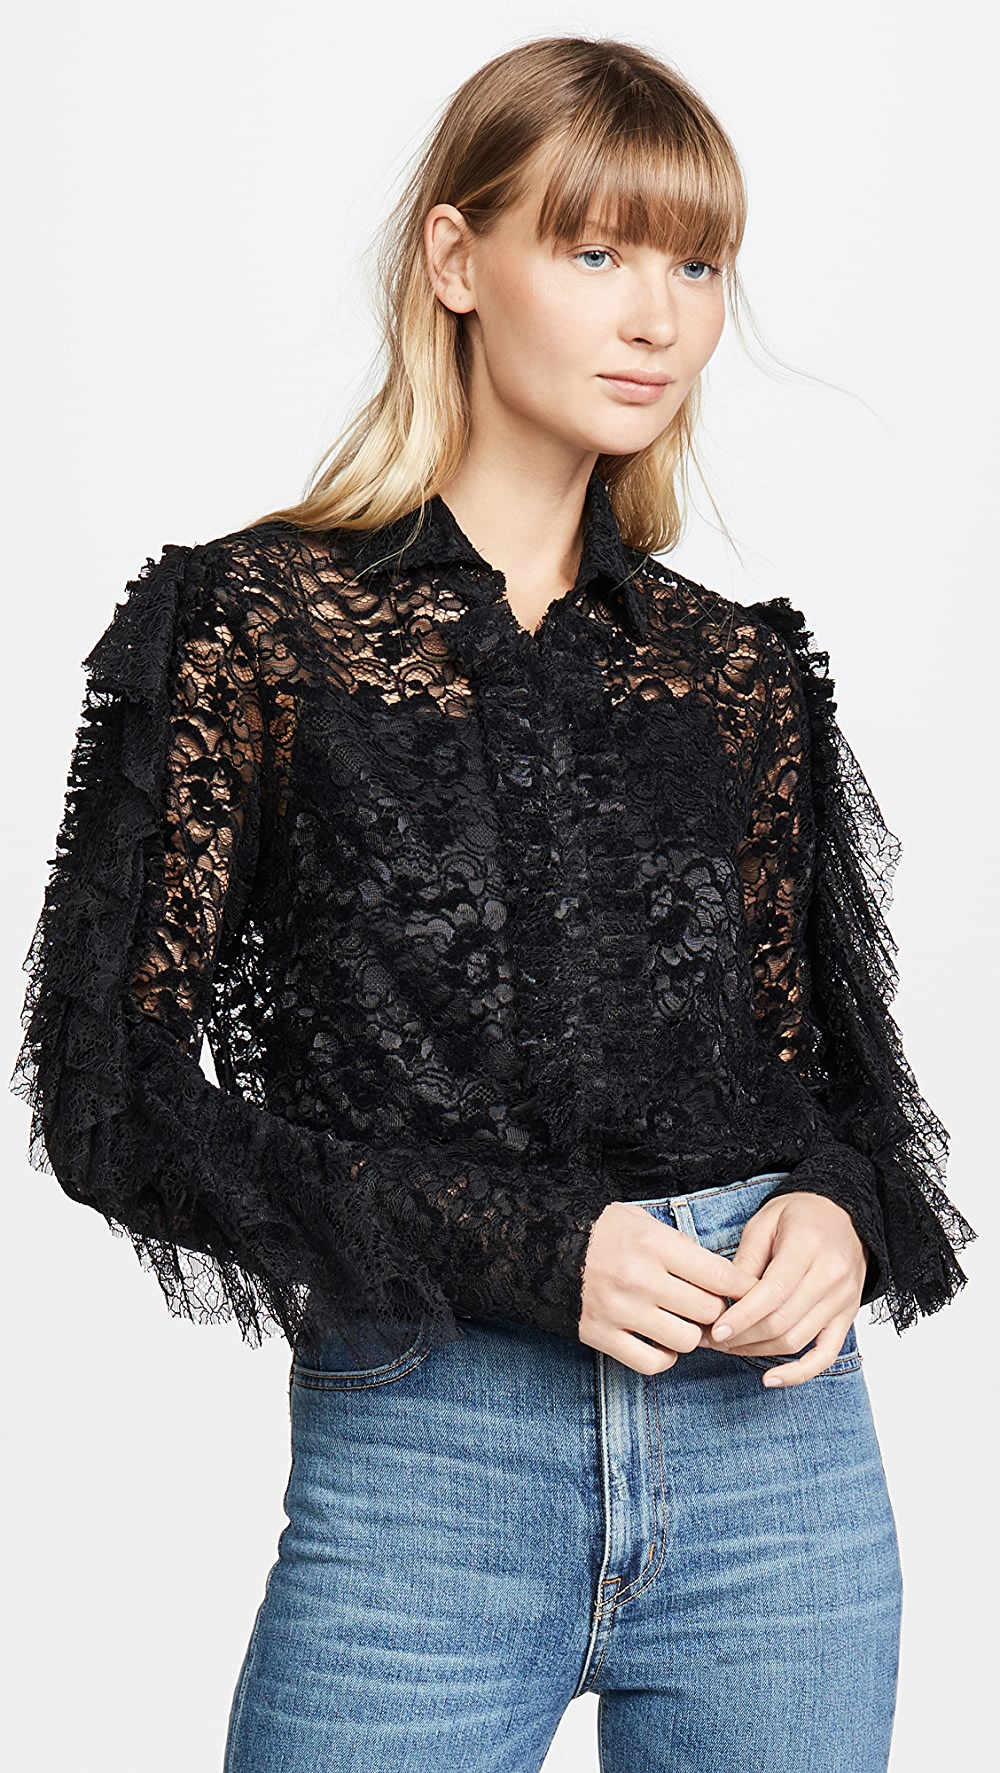 100% Quality Anais Jourden - Black Velvet Lace Shirt With Ruffles With A Long Standing Reputation